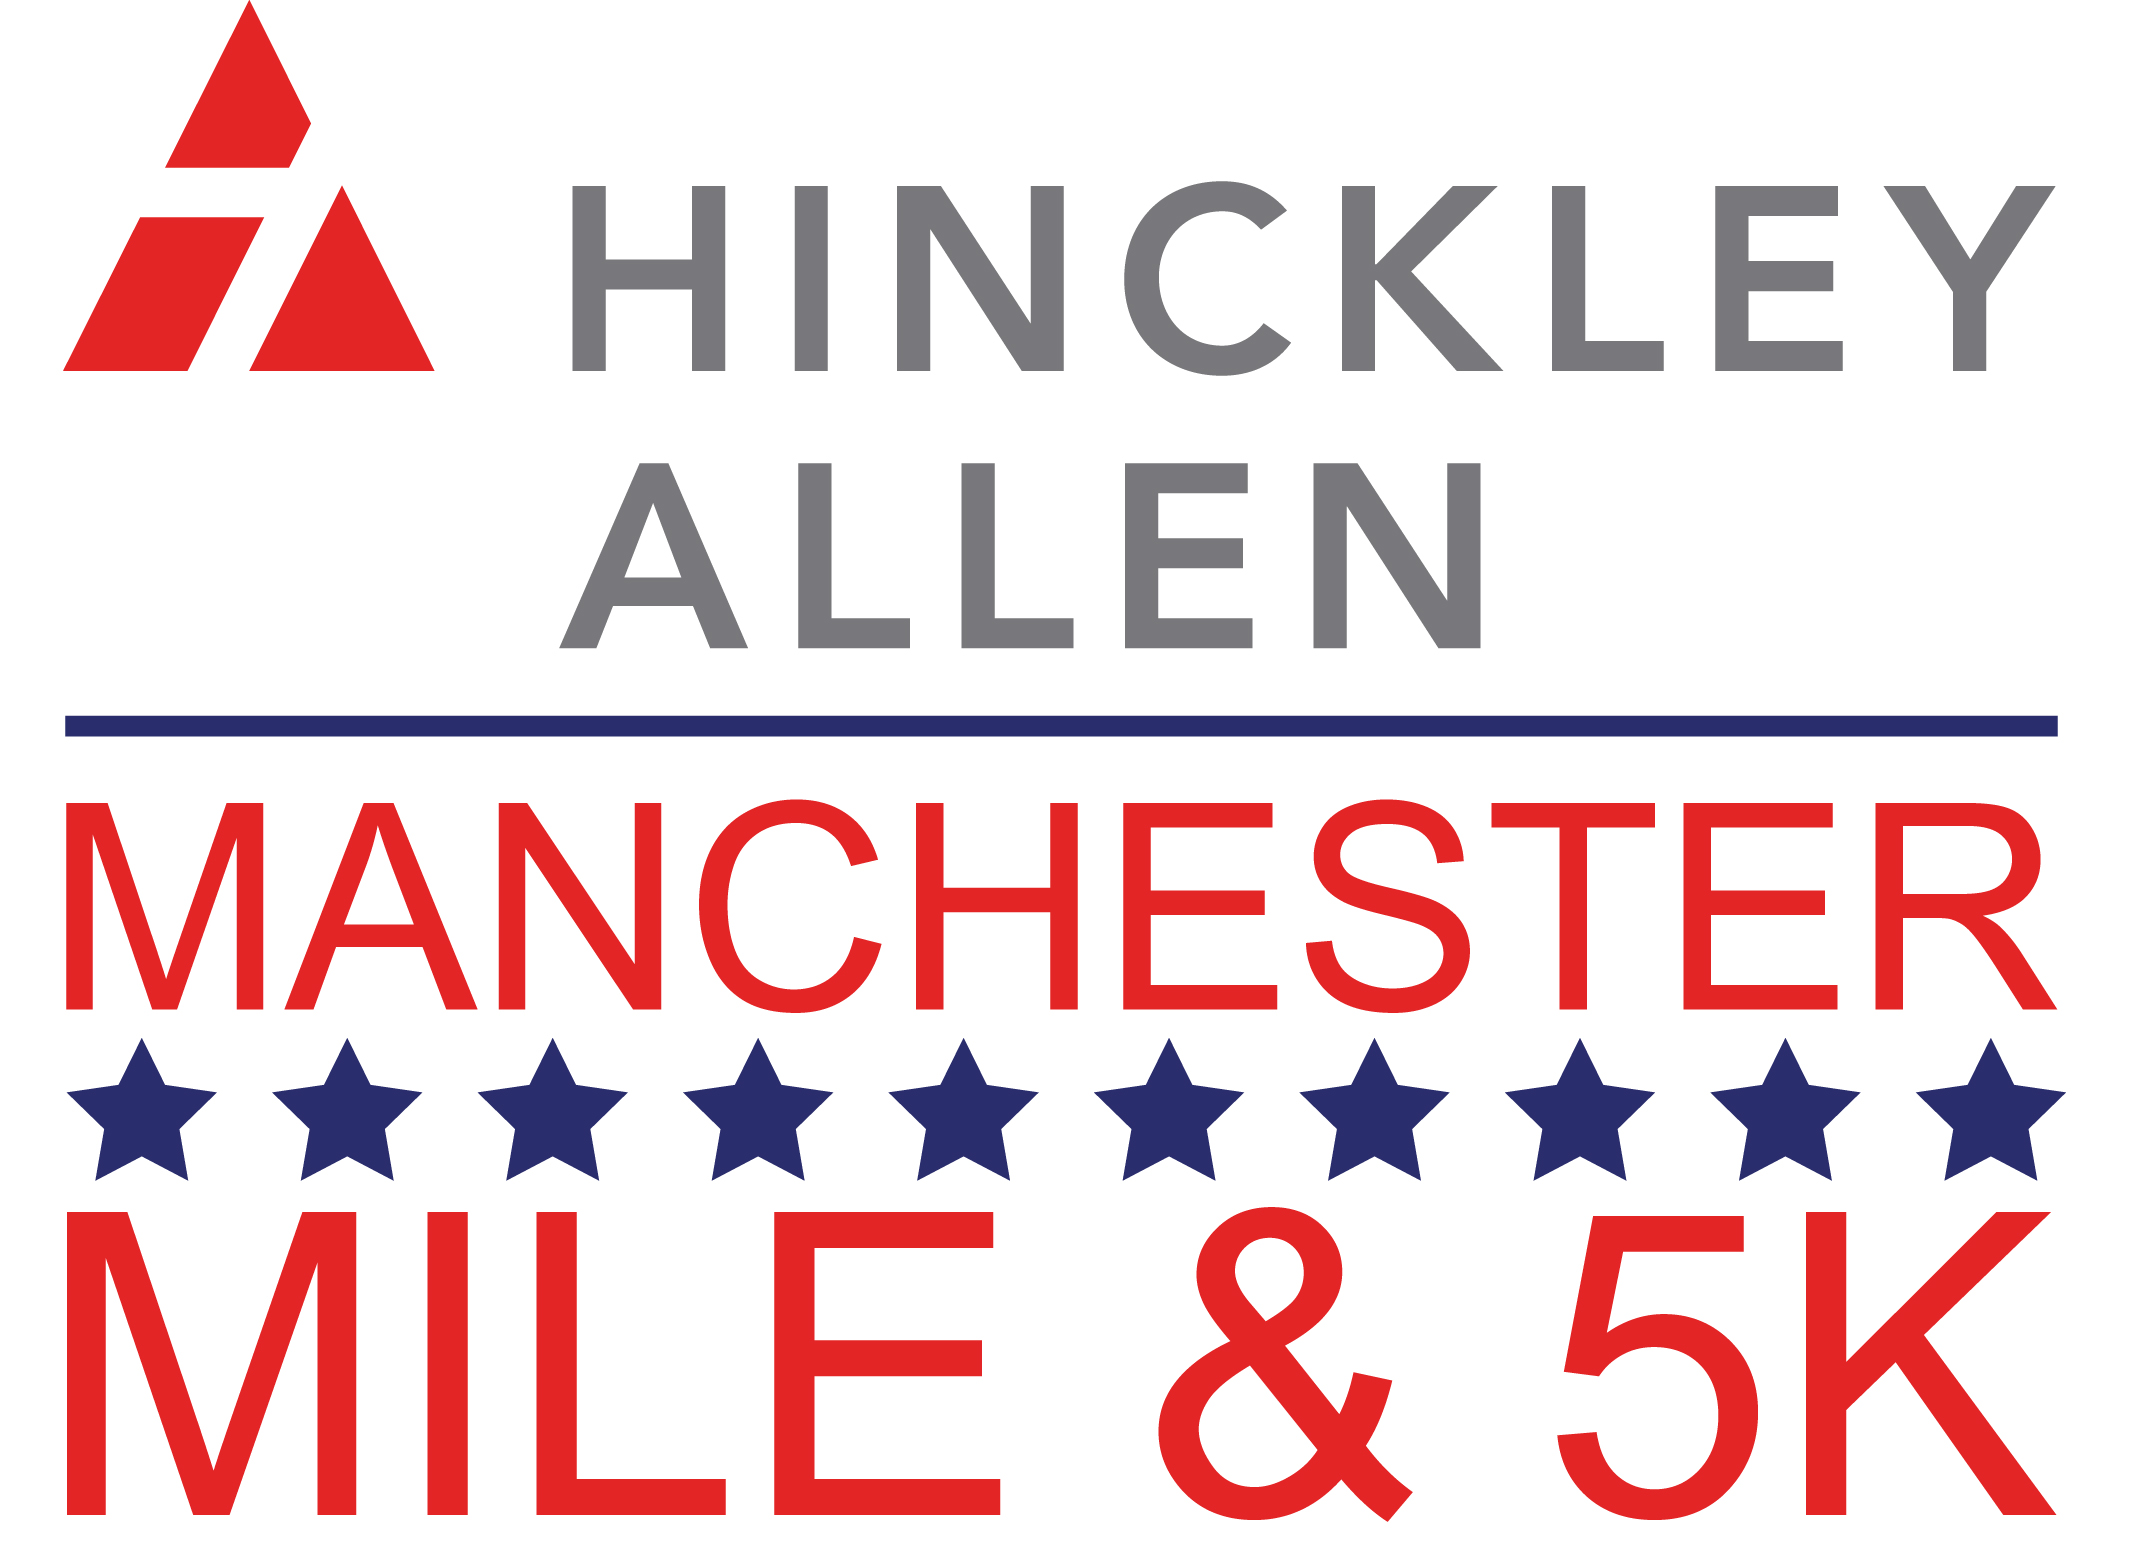 RESULTS: Hinckley Allen Manchester Mile & 5K – One Mile Results 2013